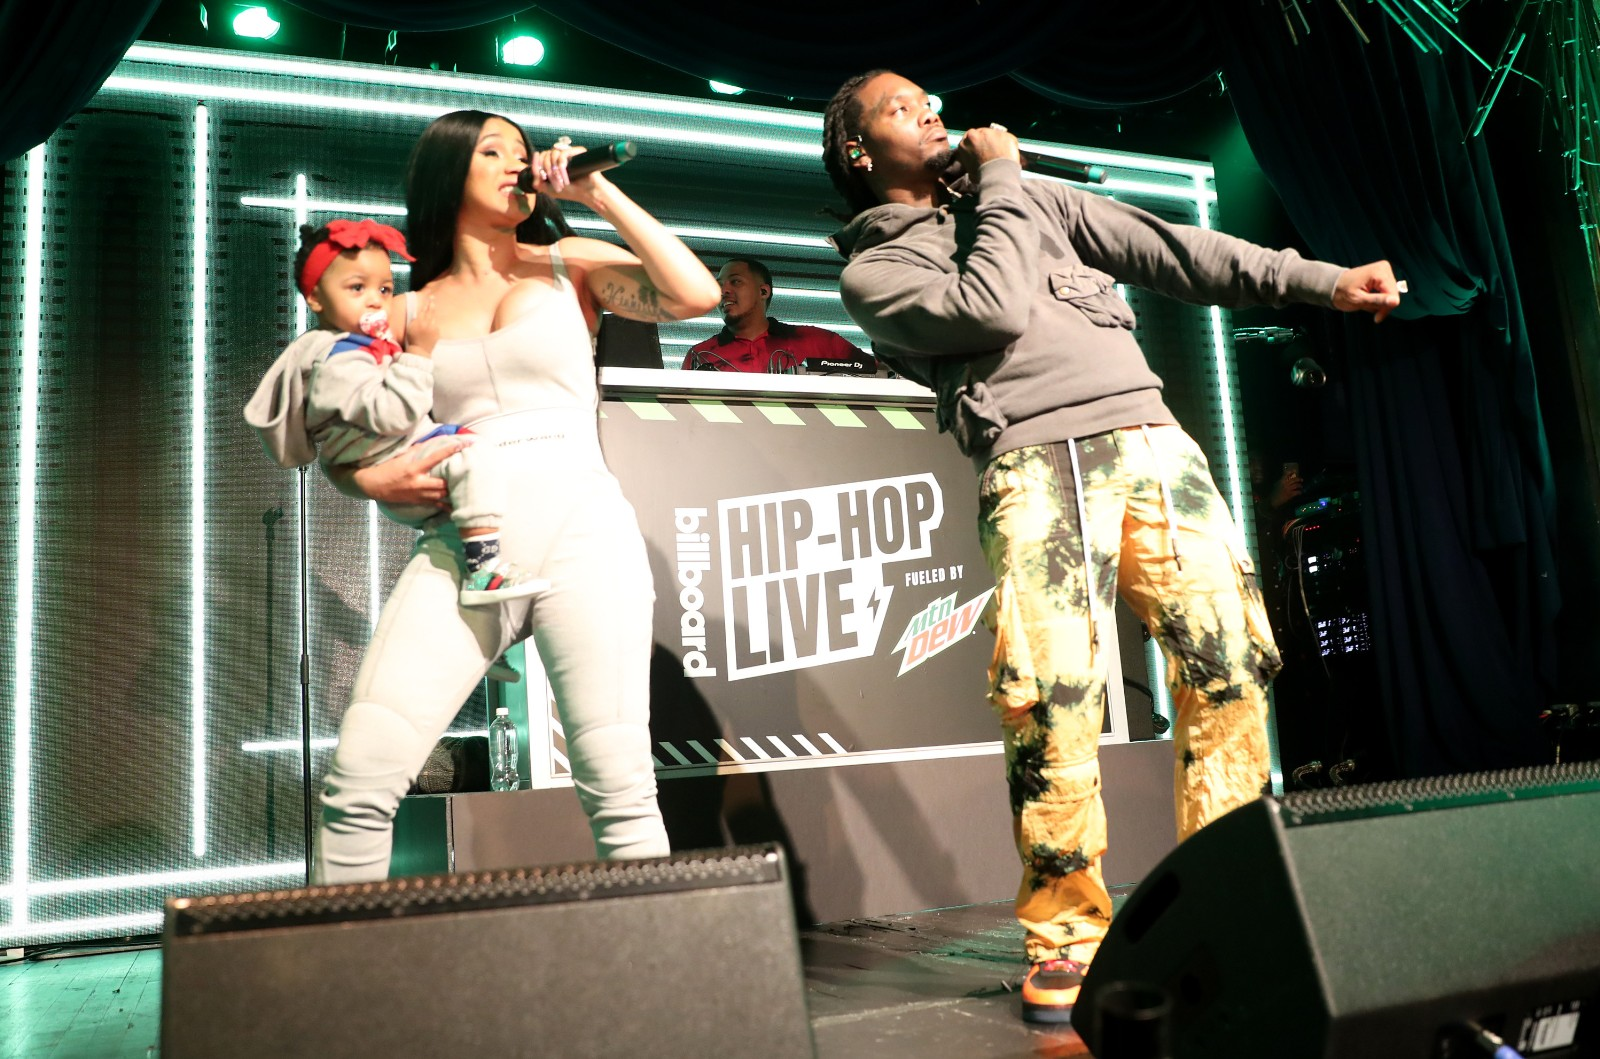 Cardi B with baby Kulture and Offset perform at Offset In Concert at Sony Hall on October 16, 2019 in New York City.